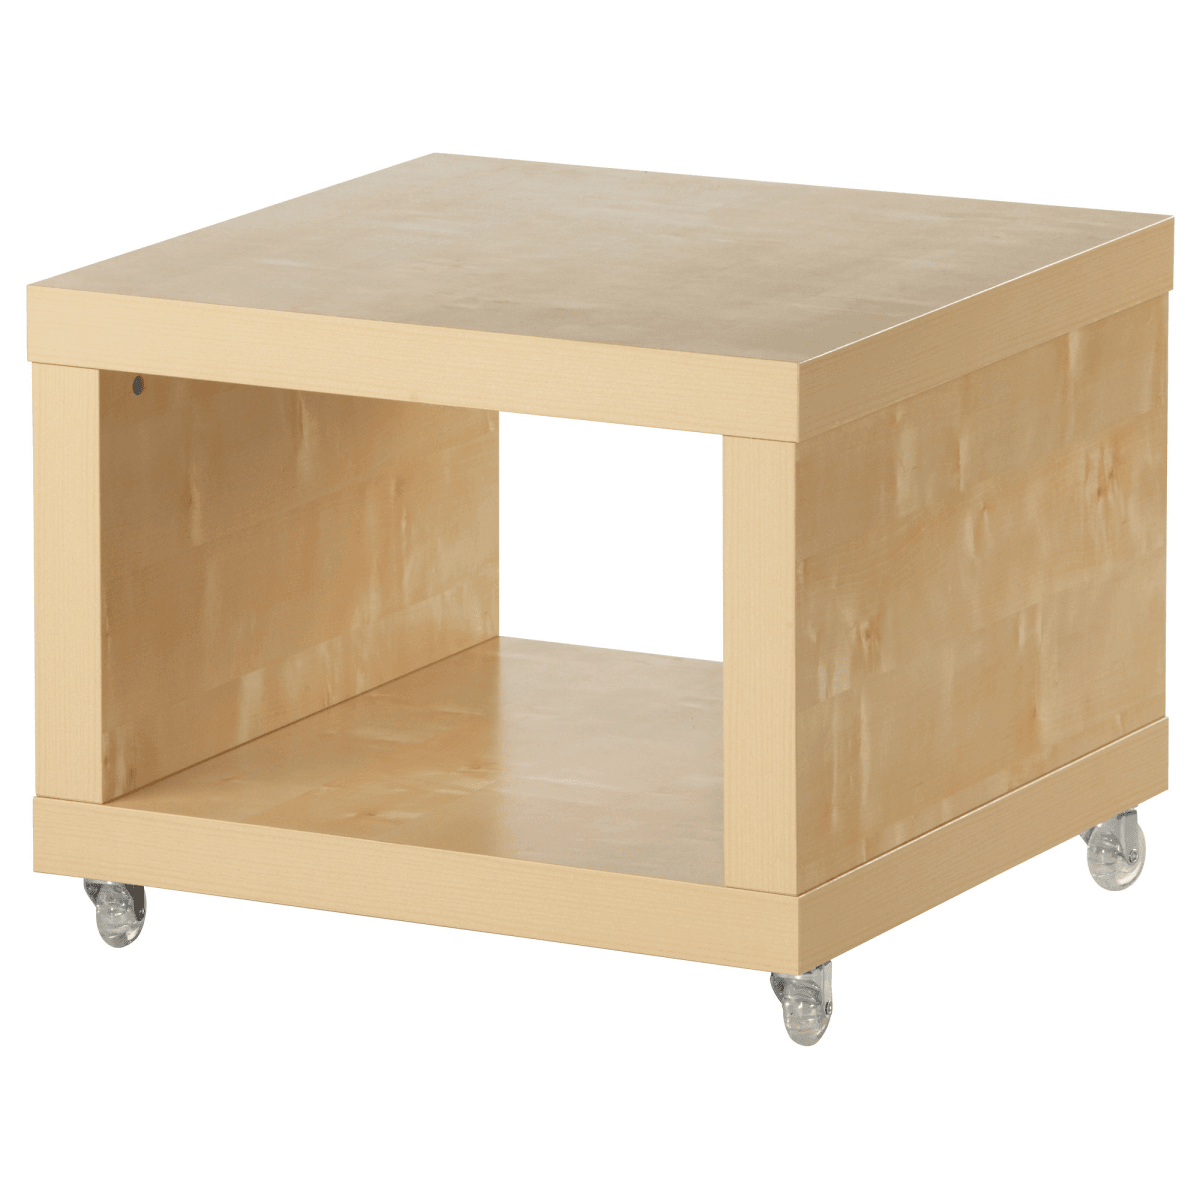 Charmant Ikea Lack Coffee/side Table Multi Use On Casters Birch Effect